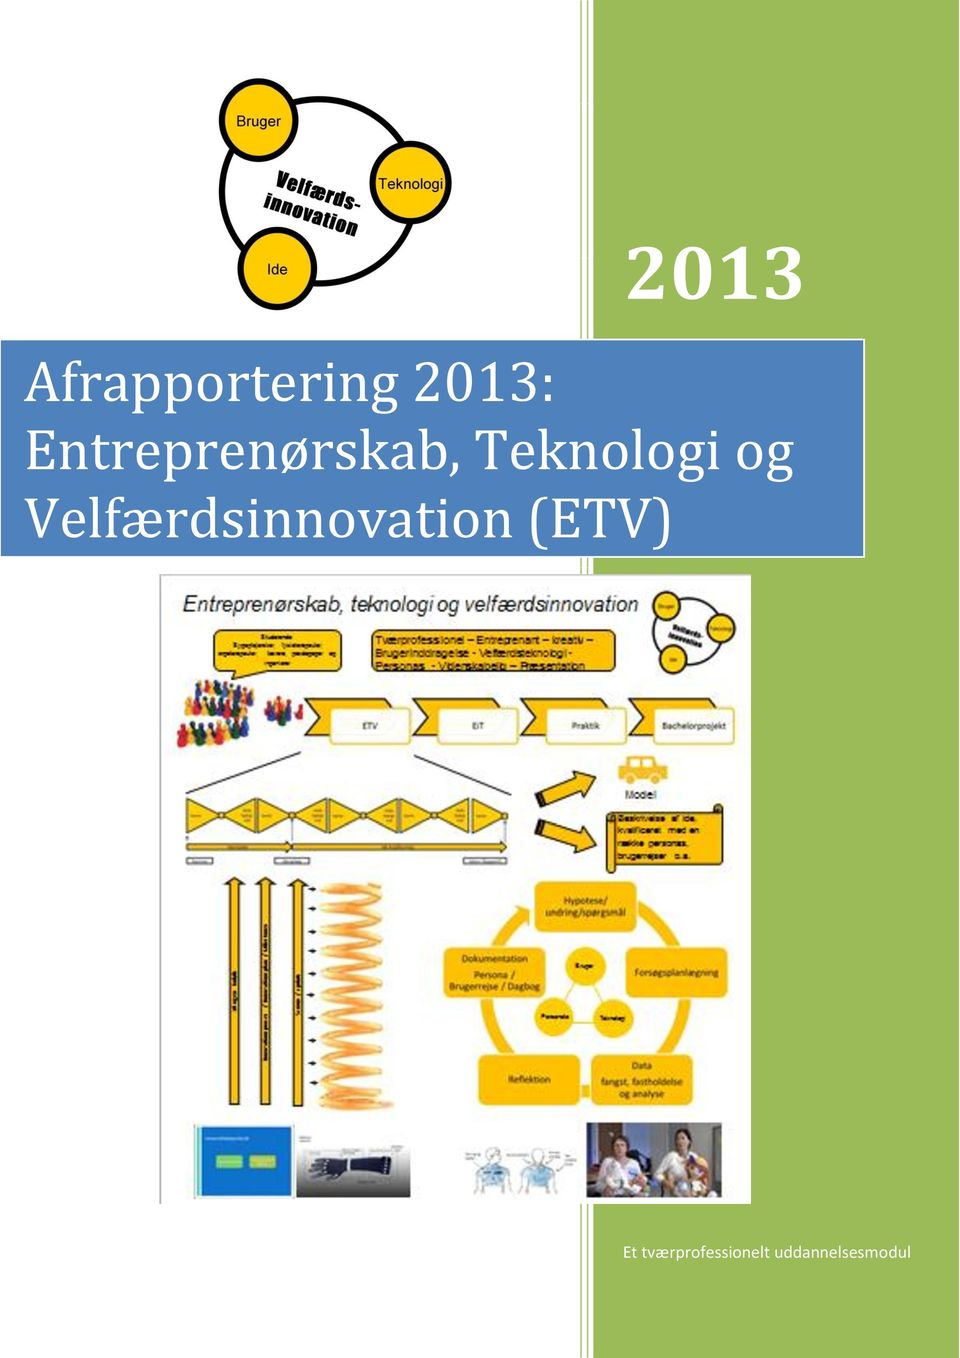 Velfærdsinnovation (ETV) Et